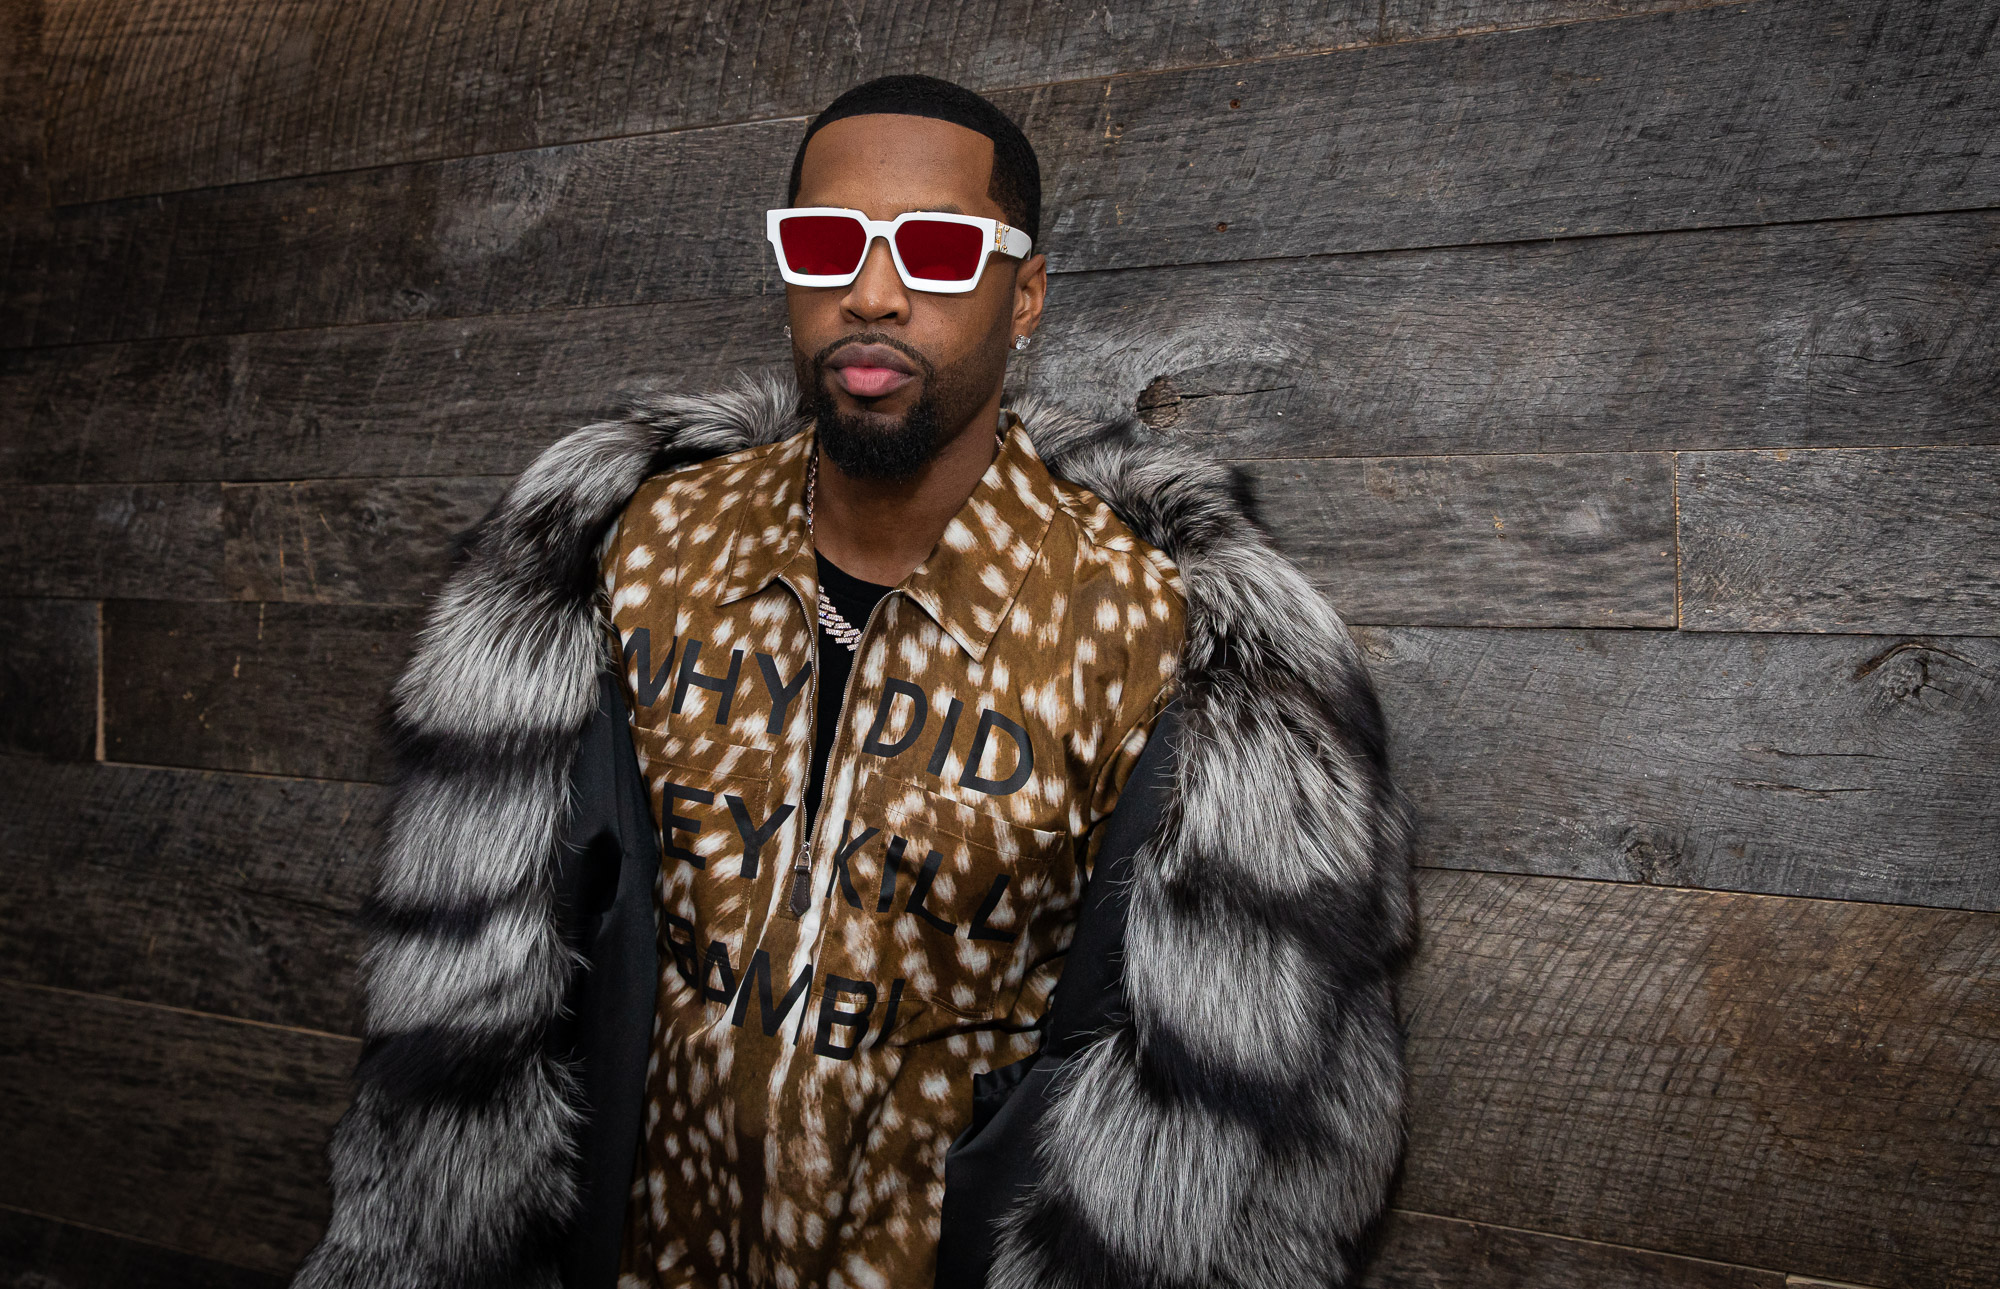 Erica Mena Says Safaree's Infidelity Caused Her To Damage His Personal Property